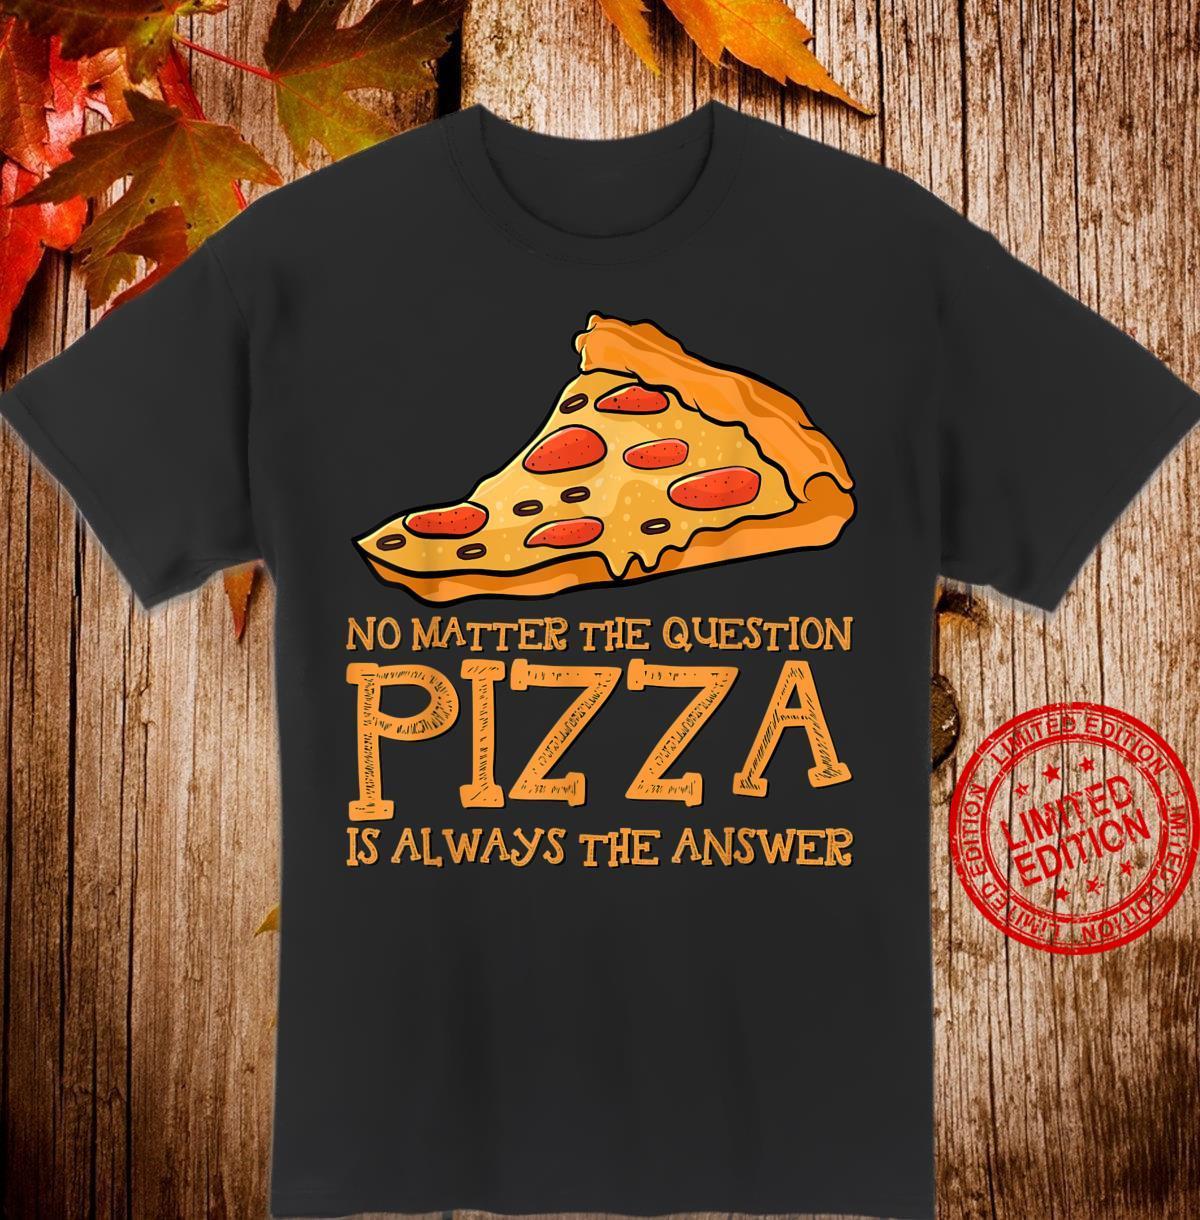 No Matter the Question Pizza is Always the Answer Topping Shirt